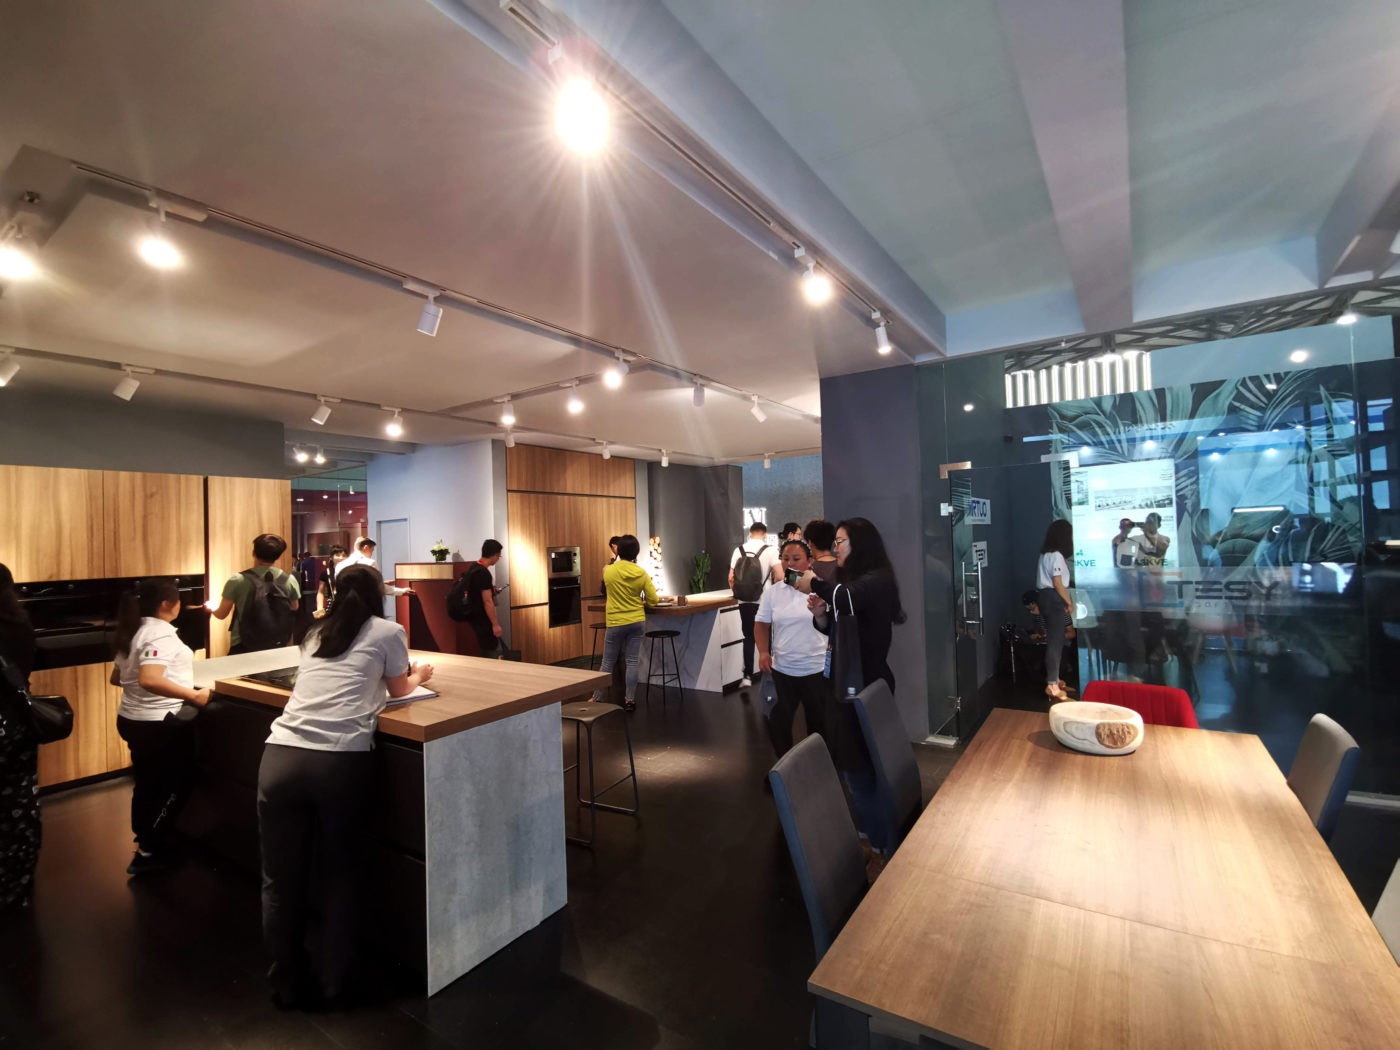 Grand succès pour Arredo3 au Kitchen & Bath 2019 Chine - 1